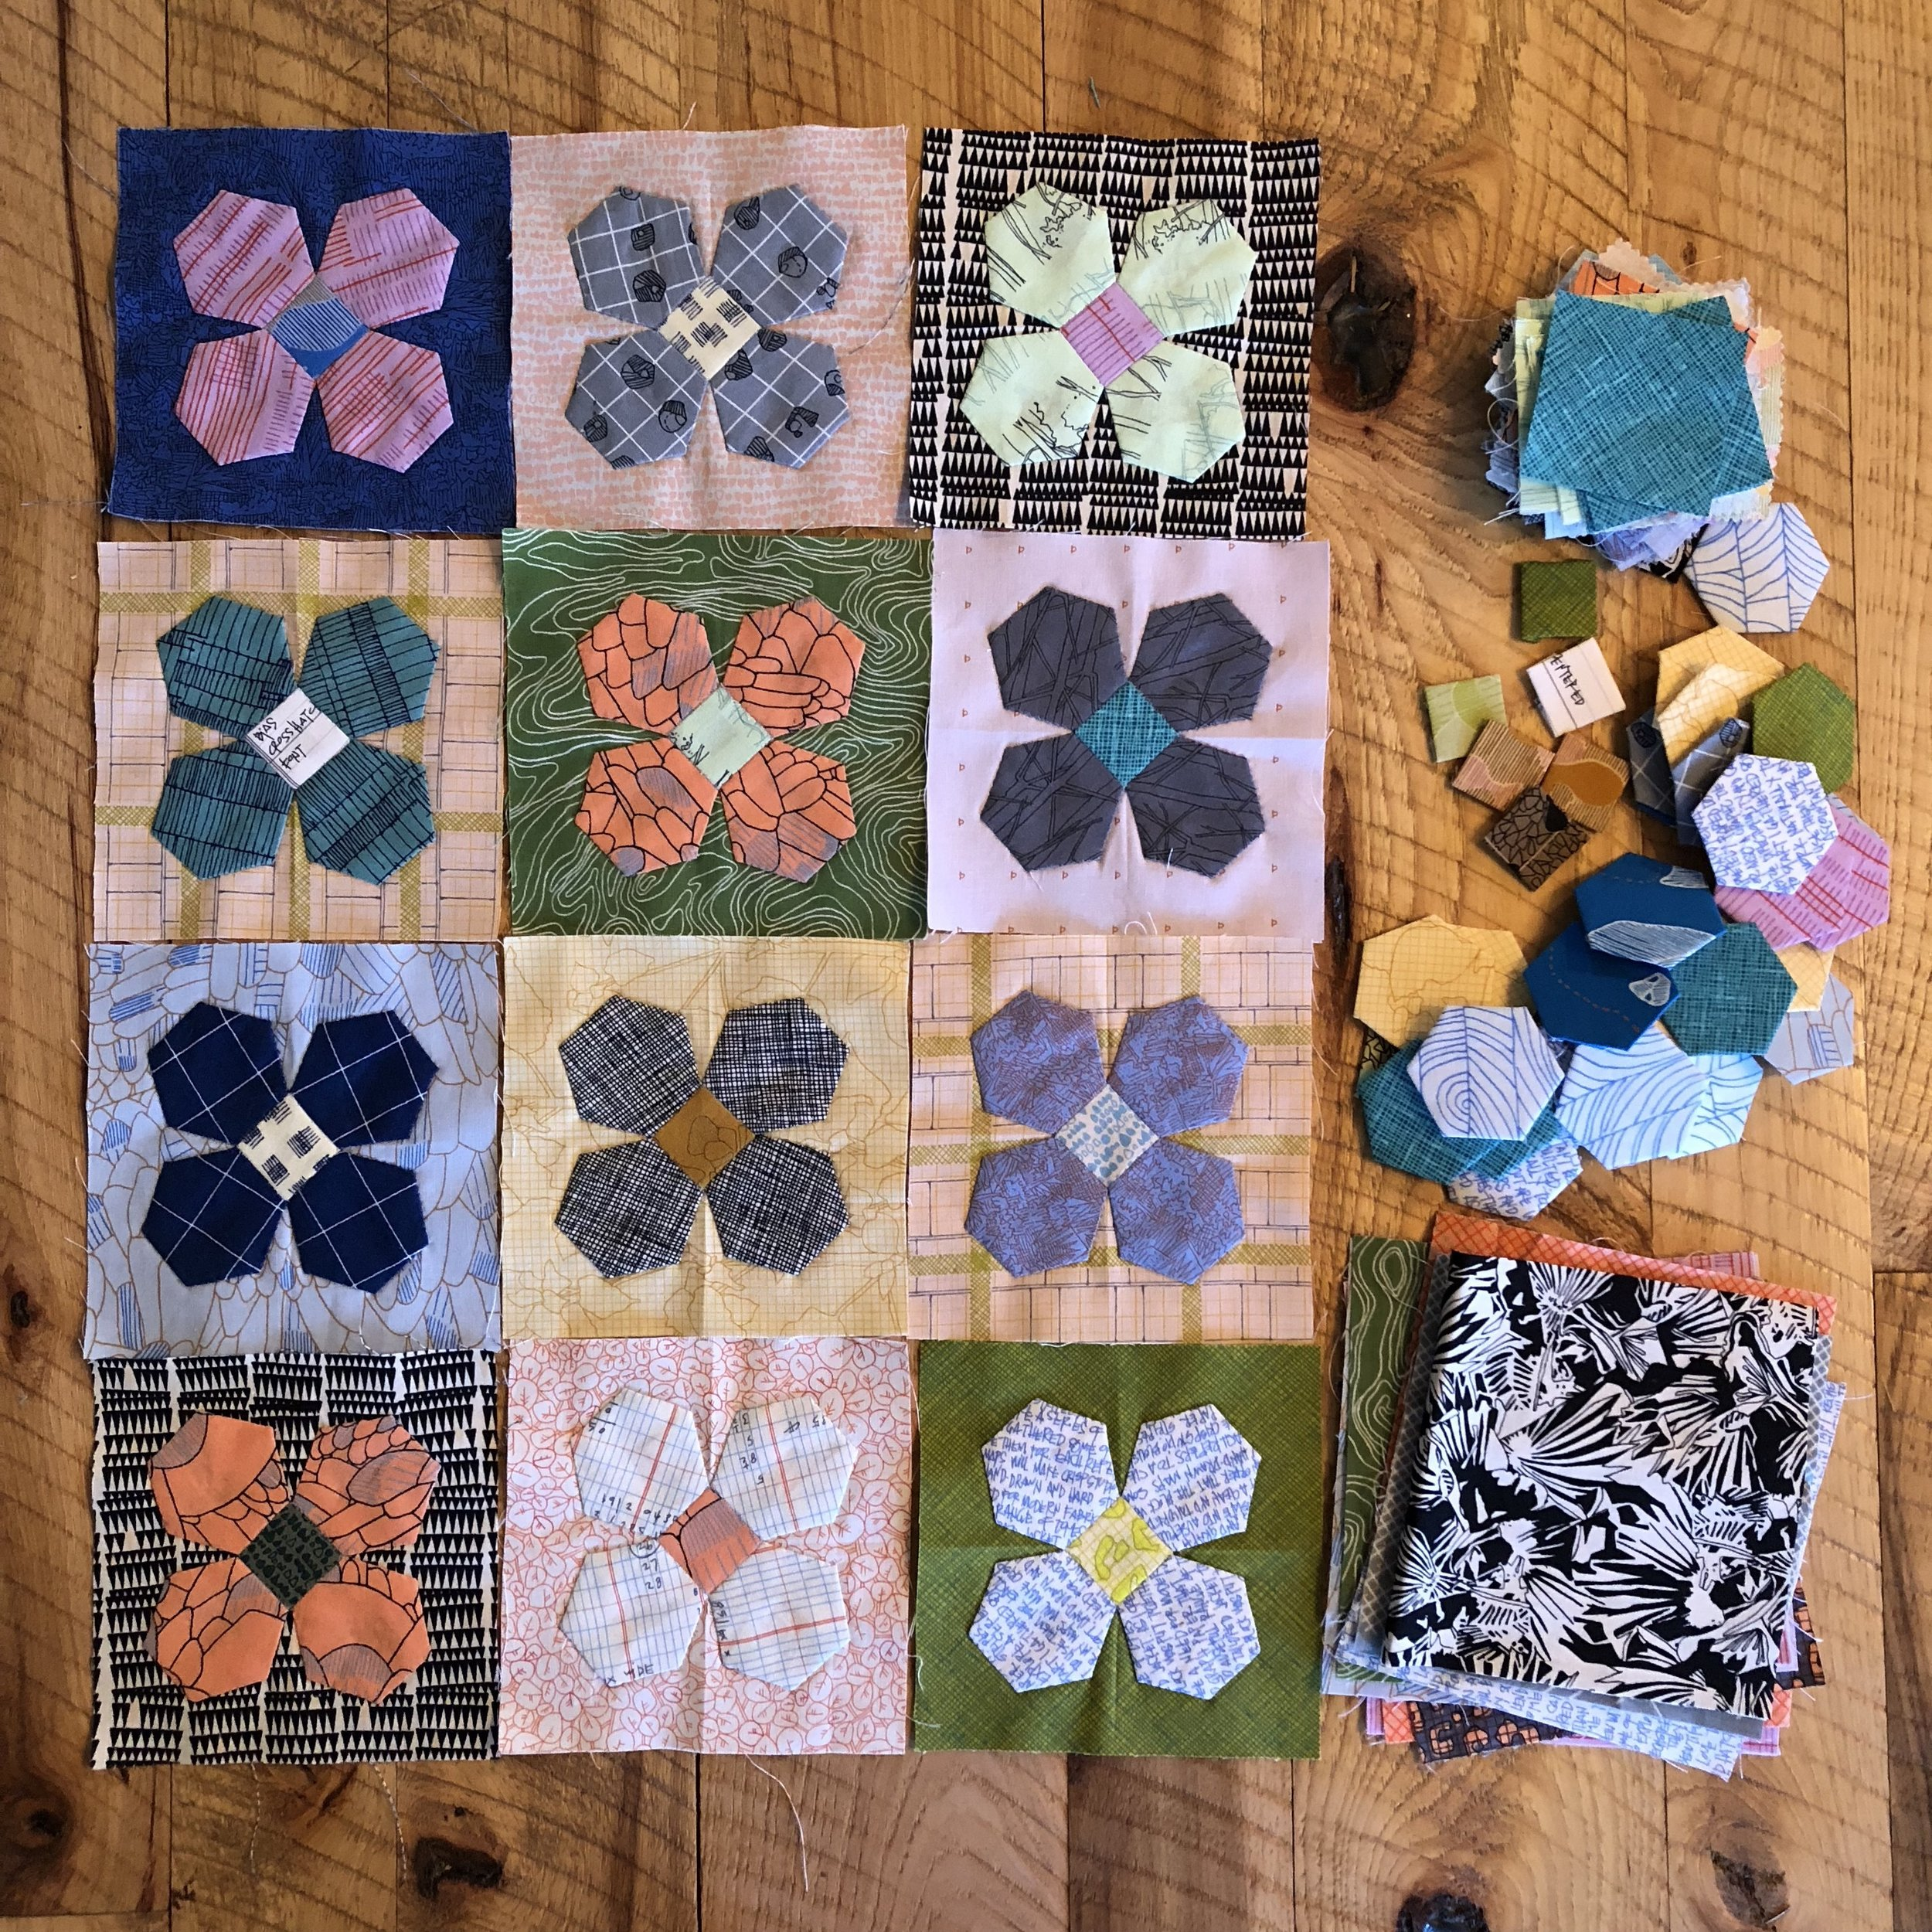 Completed blocks on hand with extra hexies, squares, and fabric